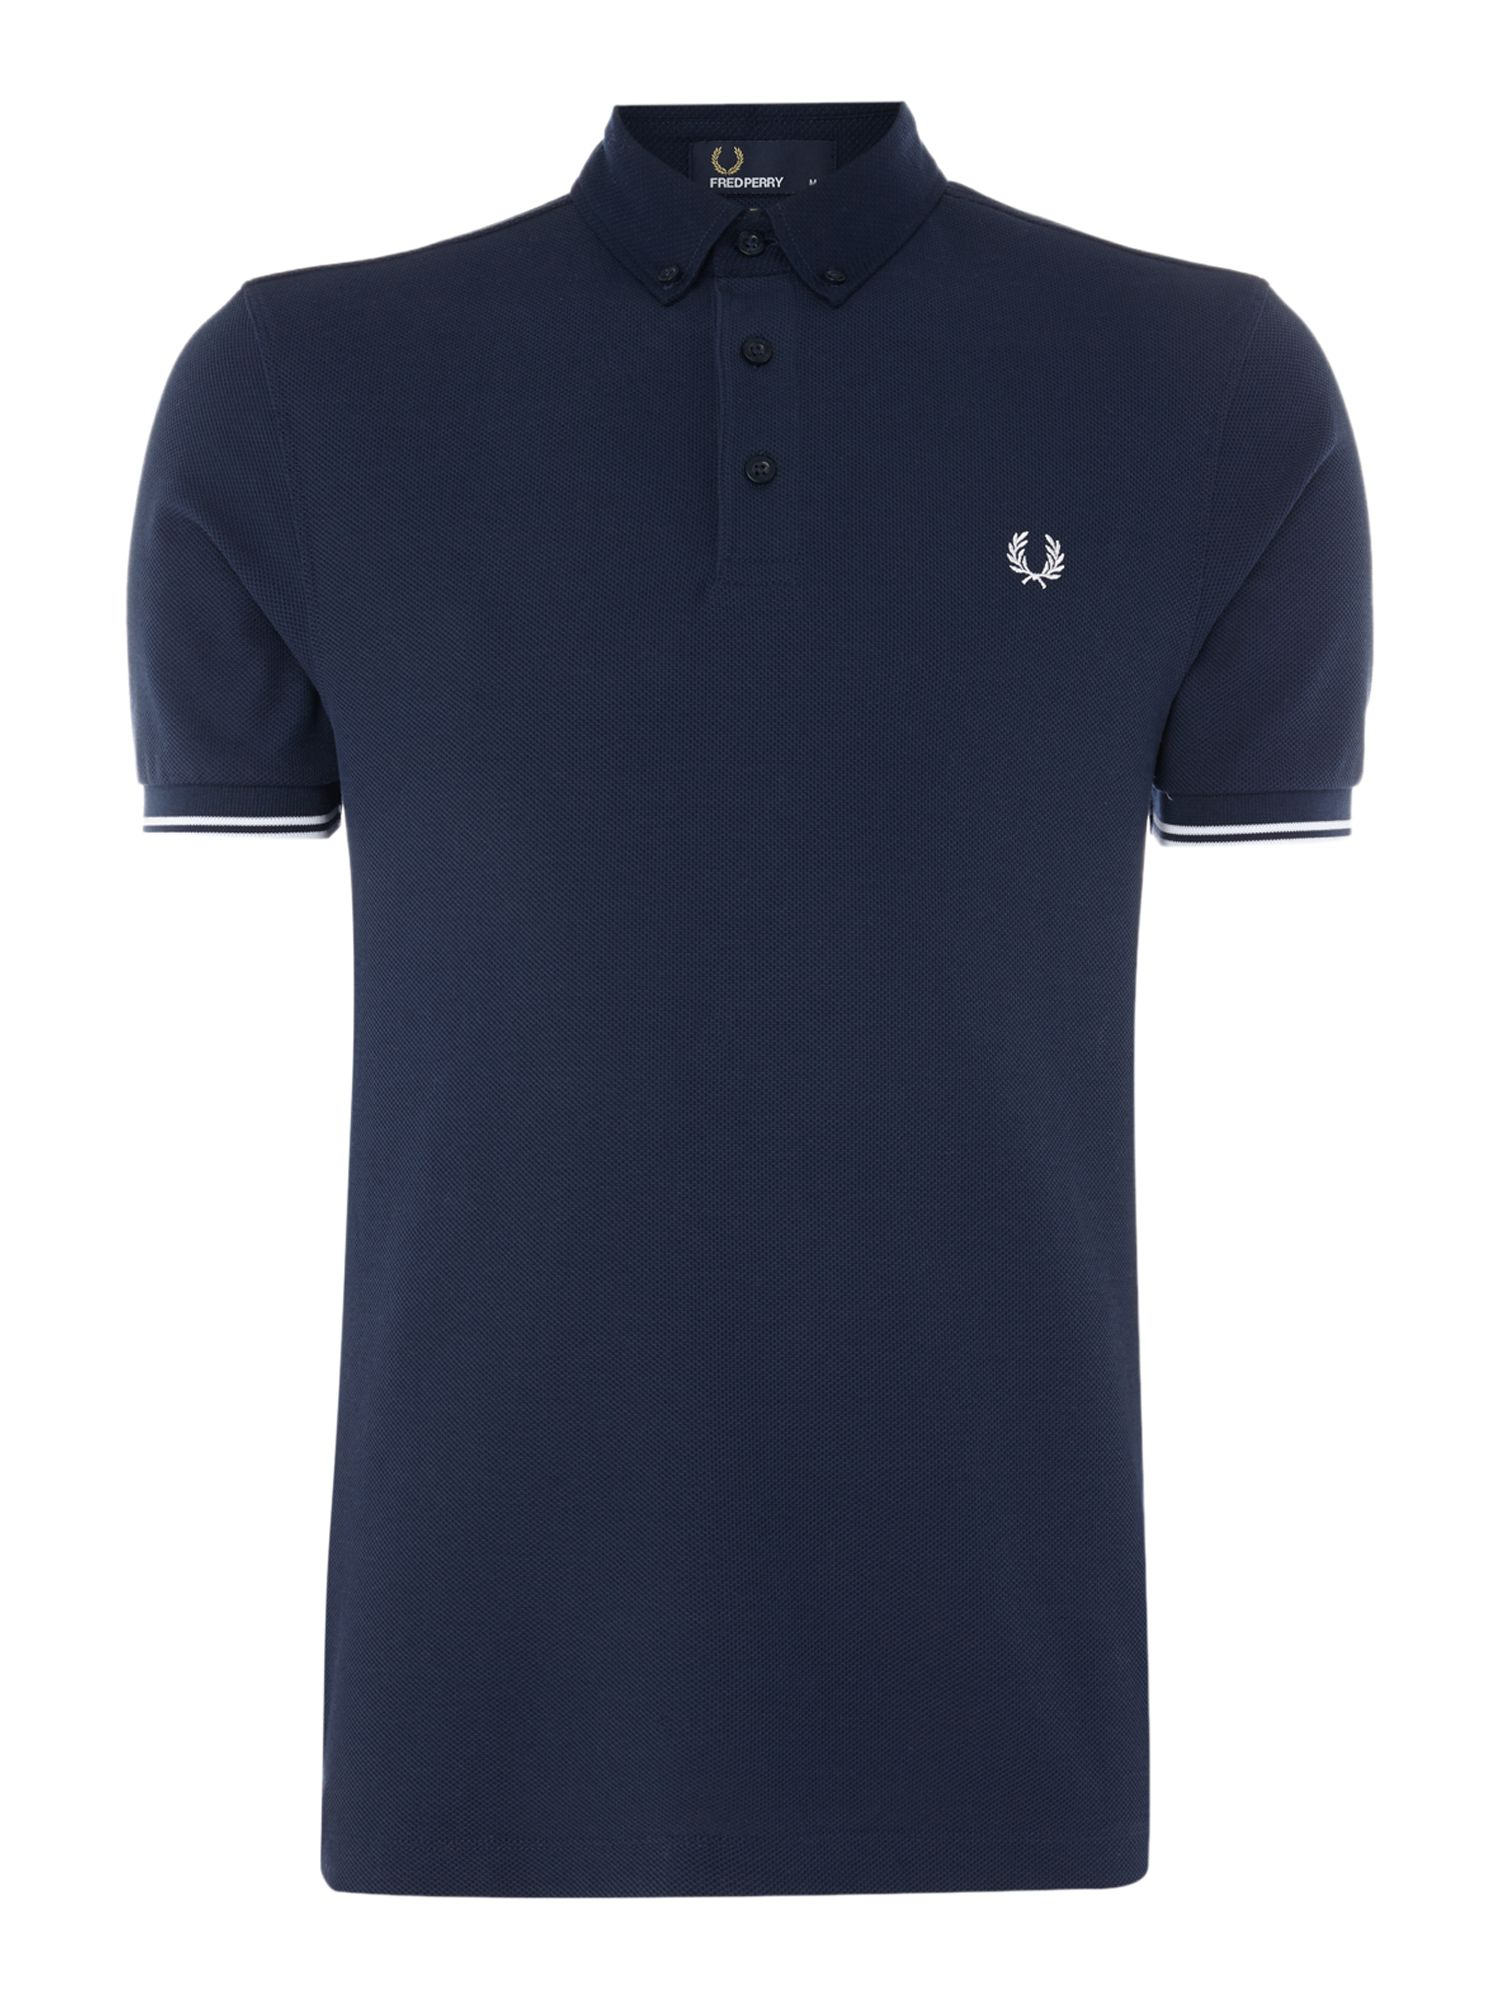 Men's Fred Perry Woven collar pique short sleeve polo, Blue